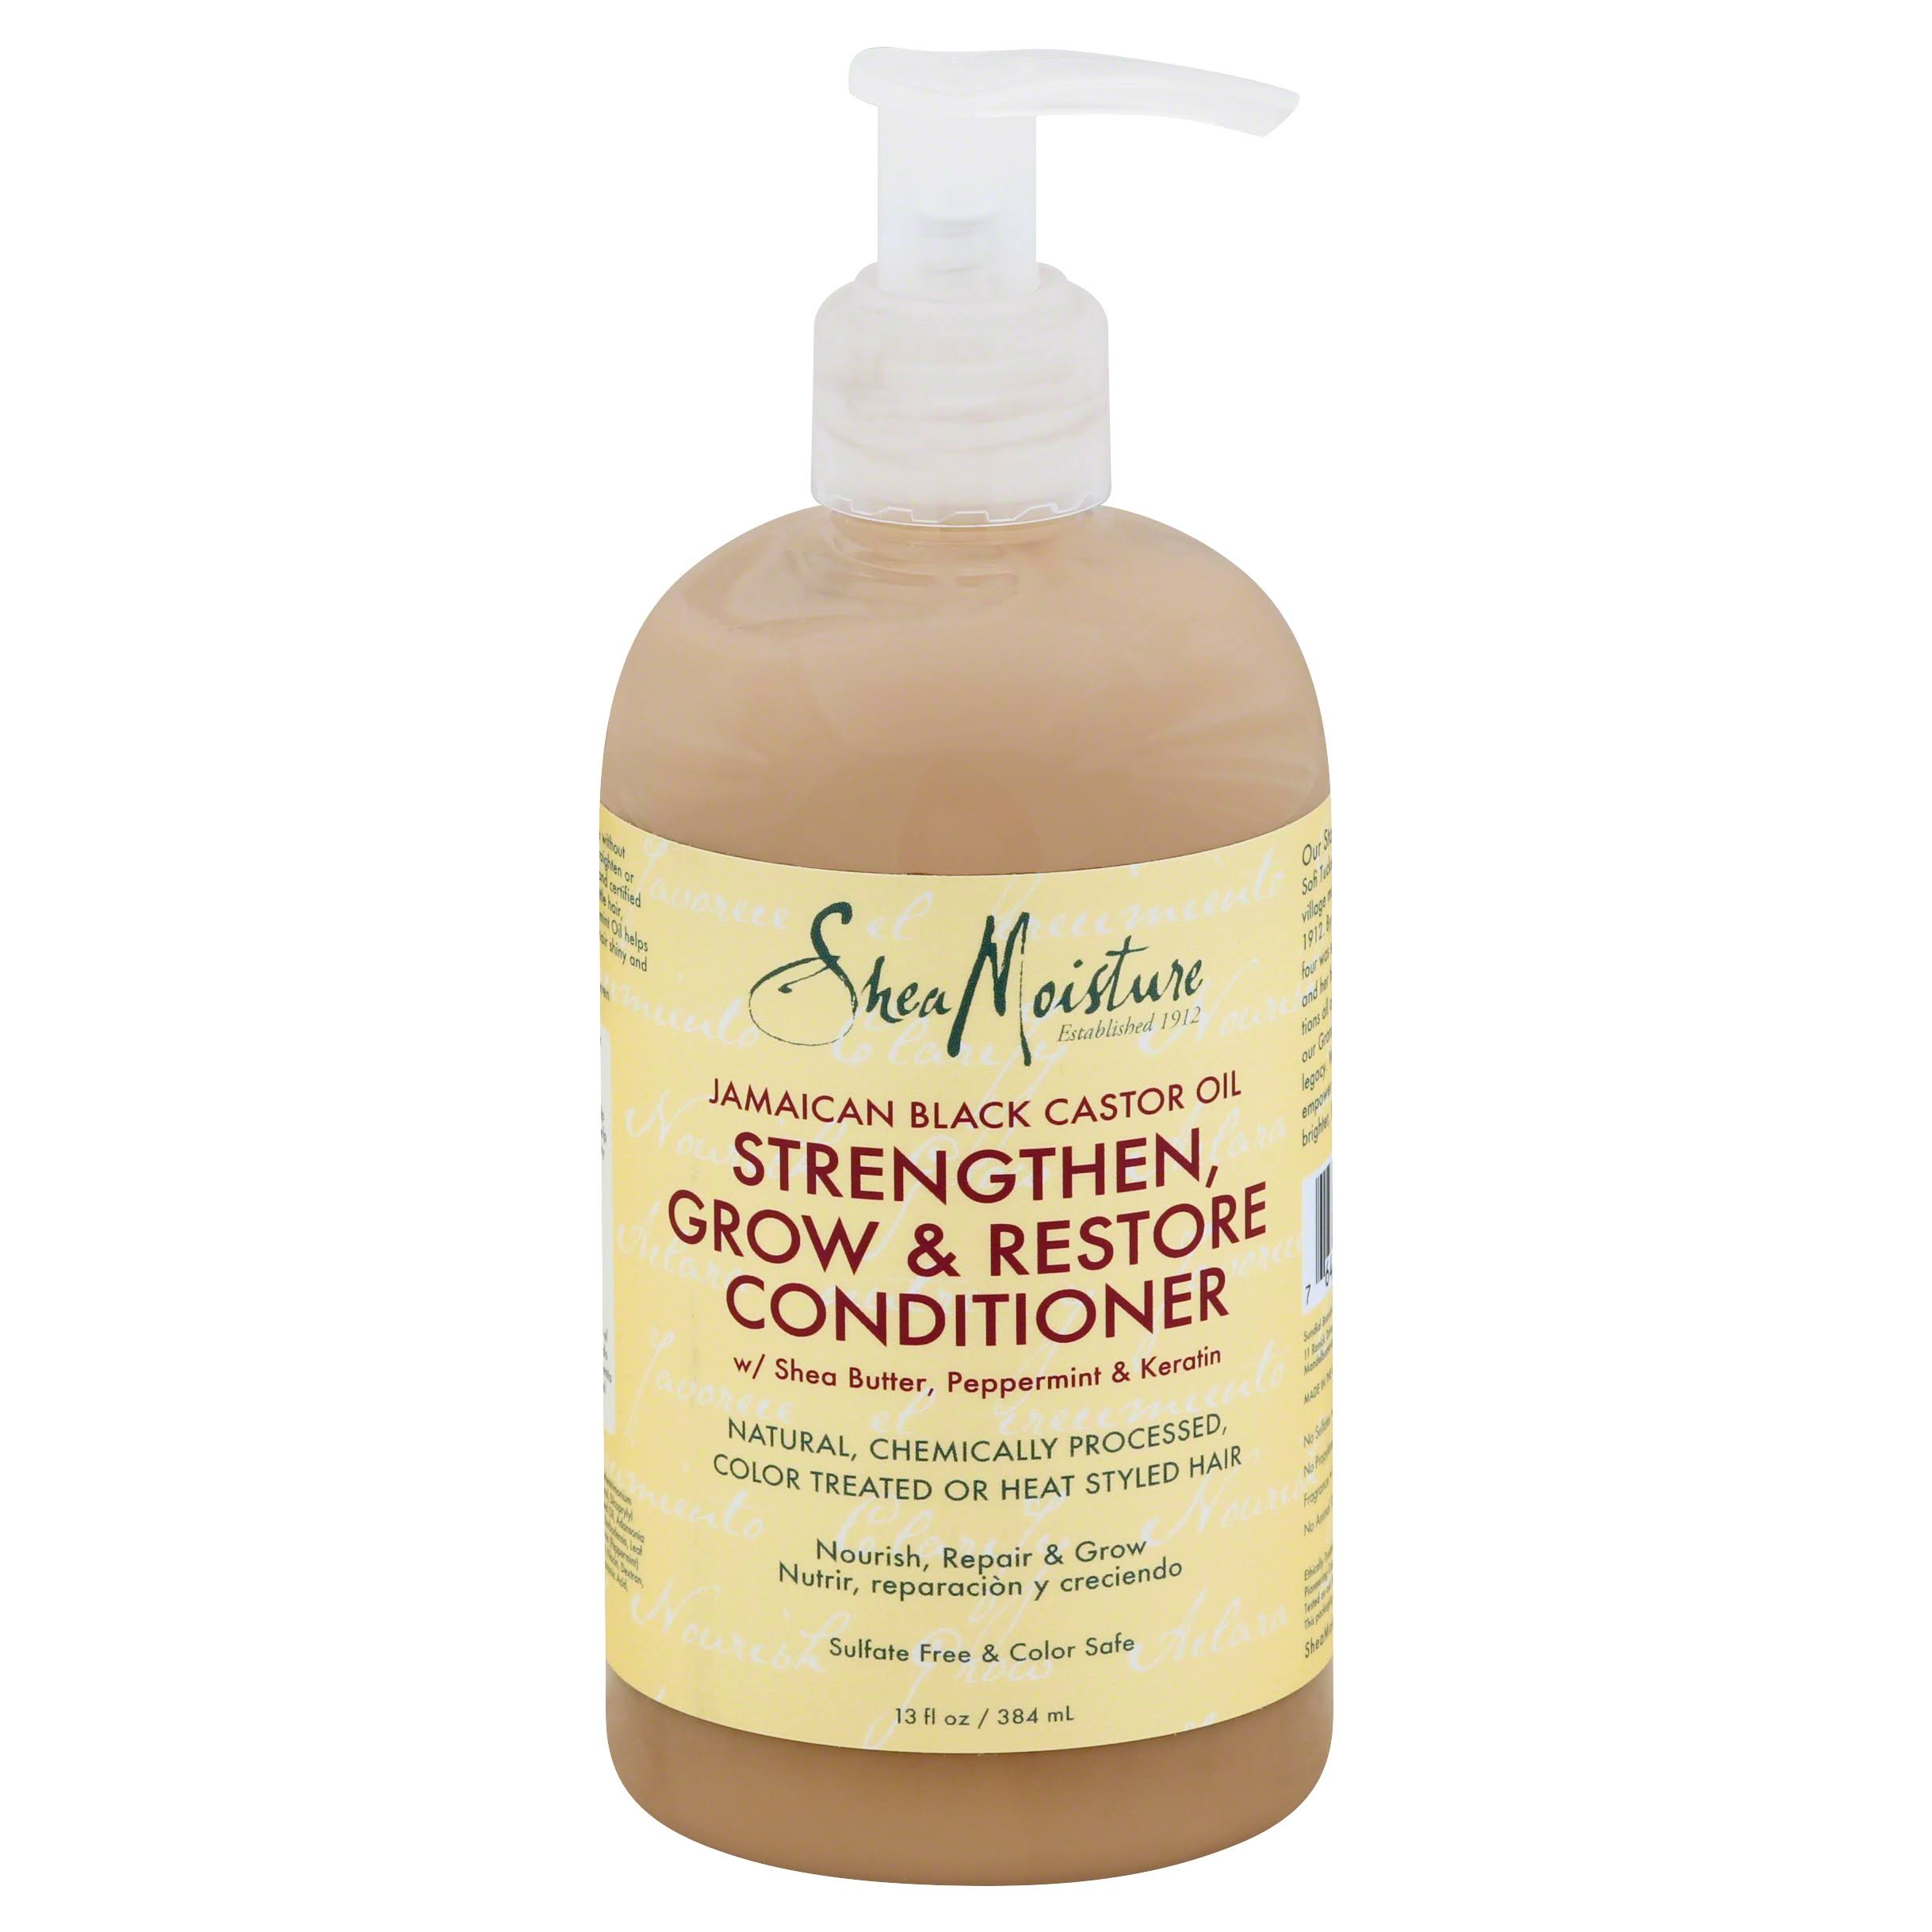 Shea Moisture Jamaican Black Castor Oil Conditioner - 13oz